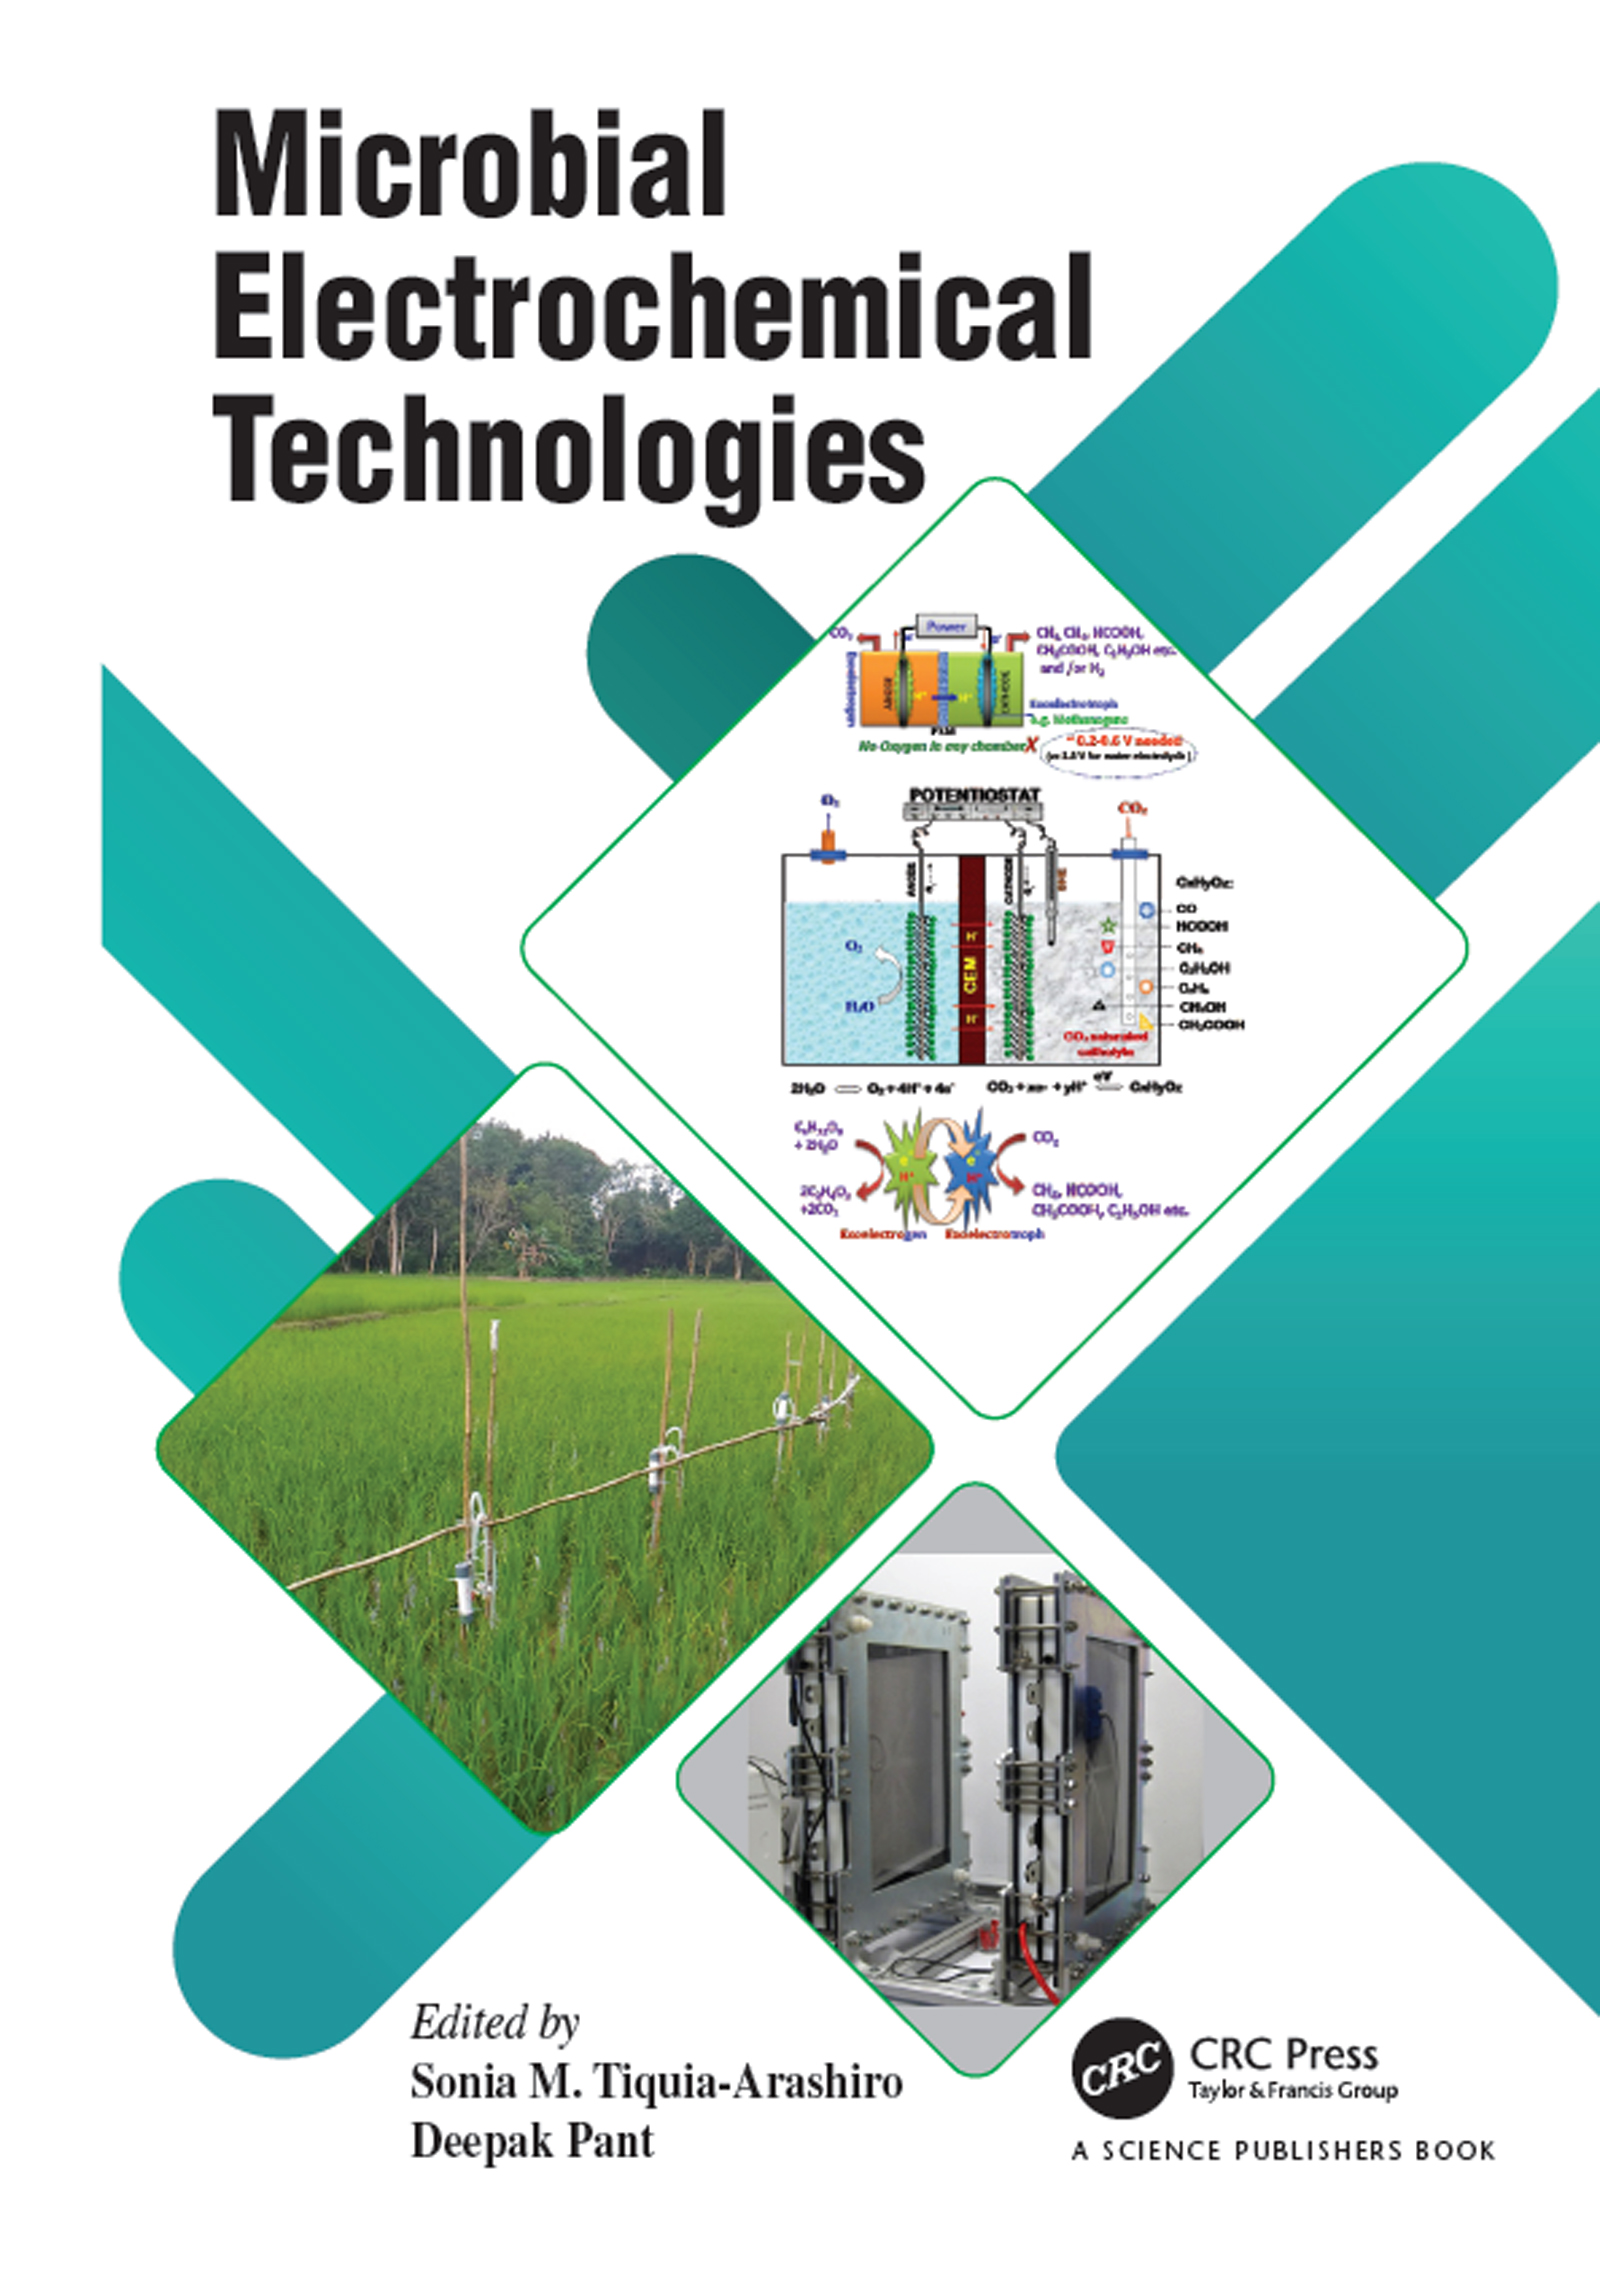 Electrode-Assisted Fermentations: Their Limitations and Future Research Directions